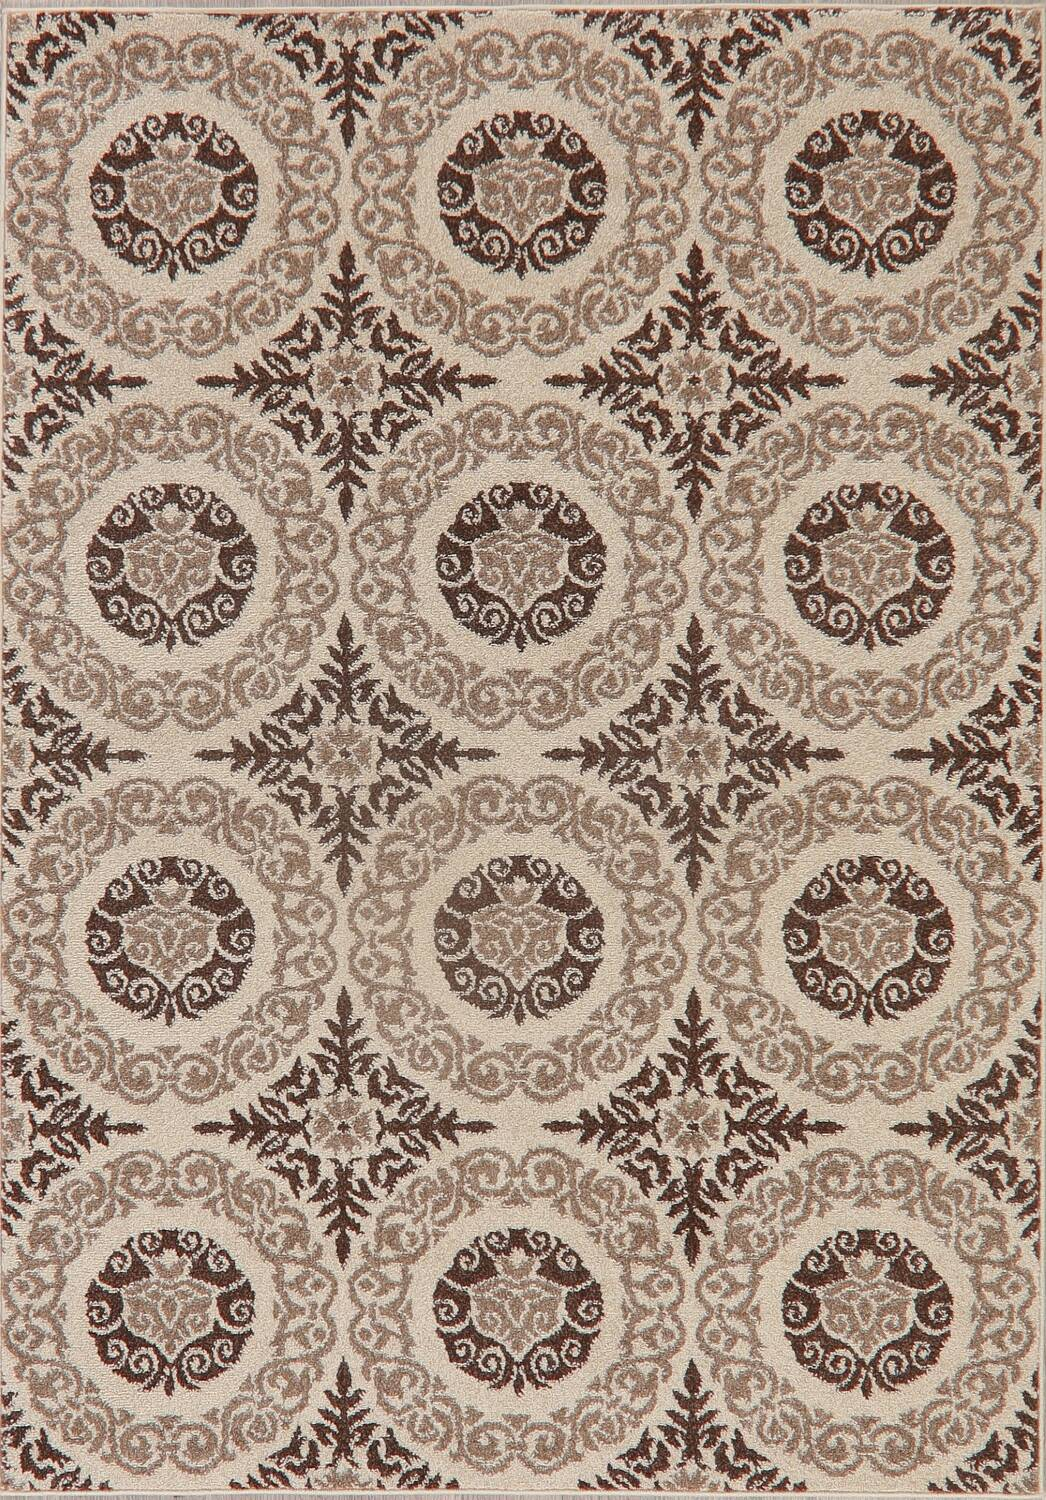 Beige & Brown Tuscan Chester Area Rug 5x7 image 1